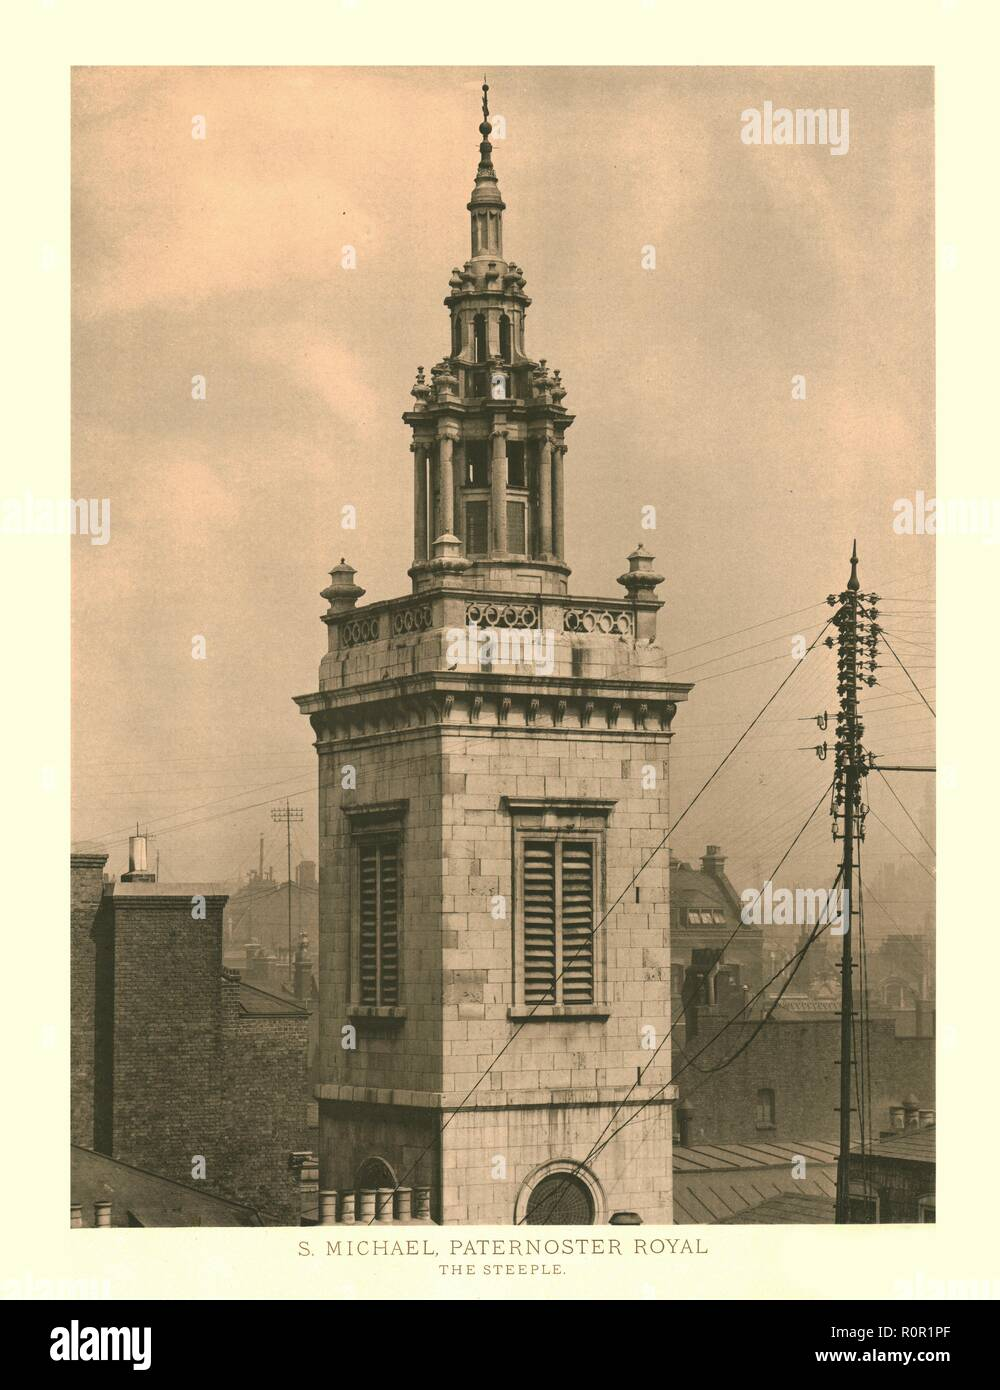 'St Michael, Paternoster Royal, The Steeple', mid-late 19th century. One of a set of views of baroque London churches. The church of St Michael Paternoster Royal on College Hill, Dowgate, in the City of London, was built by Christopher Wren in 1686-1694. - Stock Image